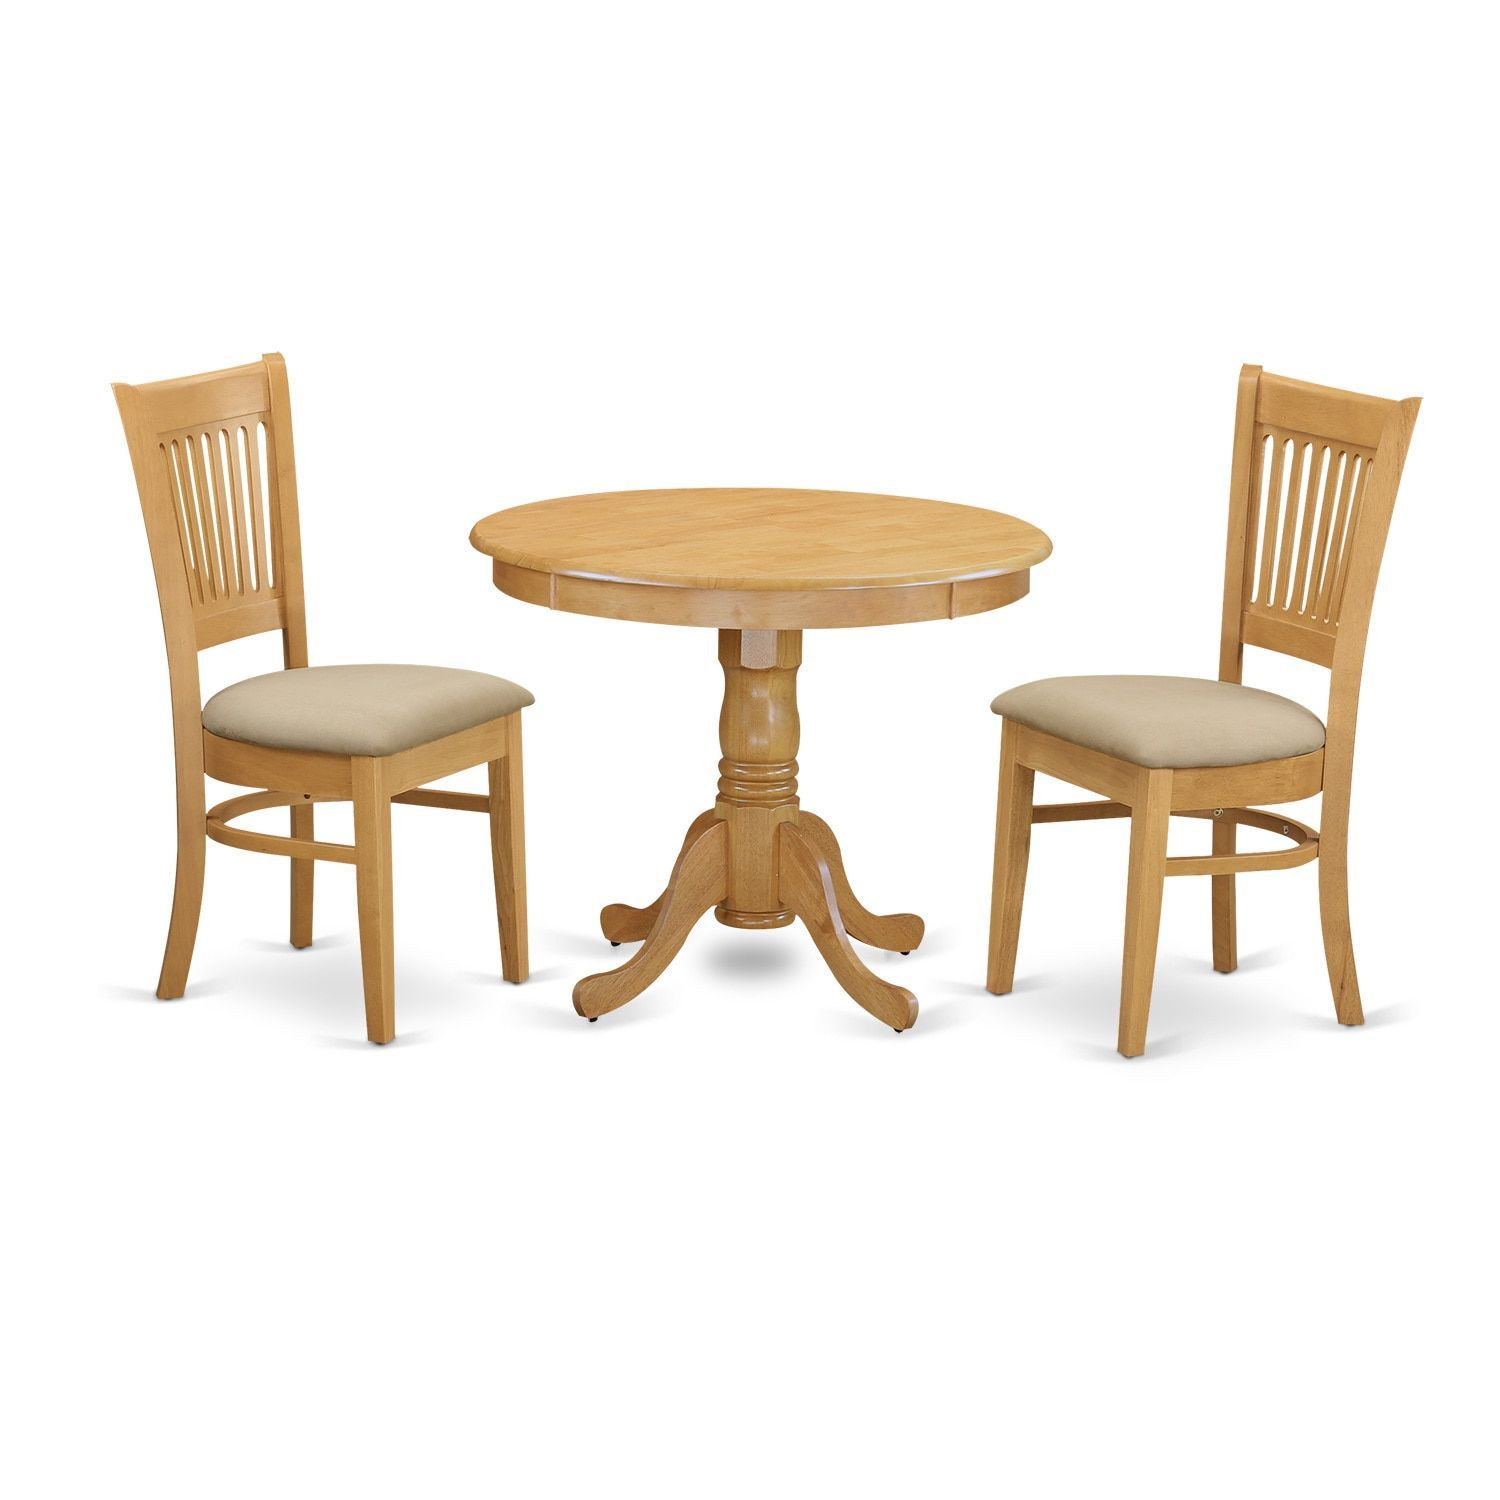 3 piece kitchen set 33 sink table and 2 dining chairs dinette wood seat microfiber gold size sets